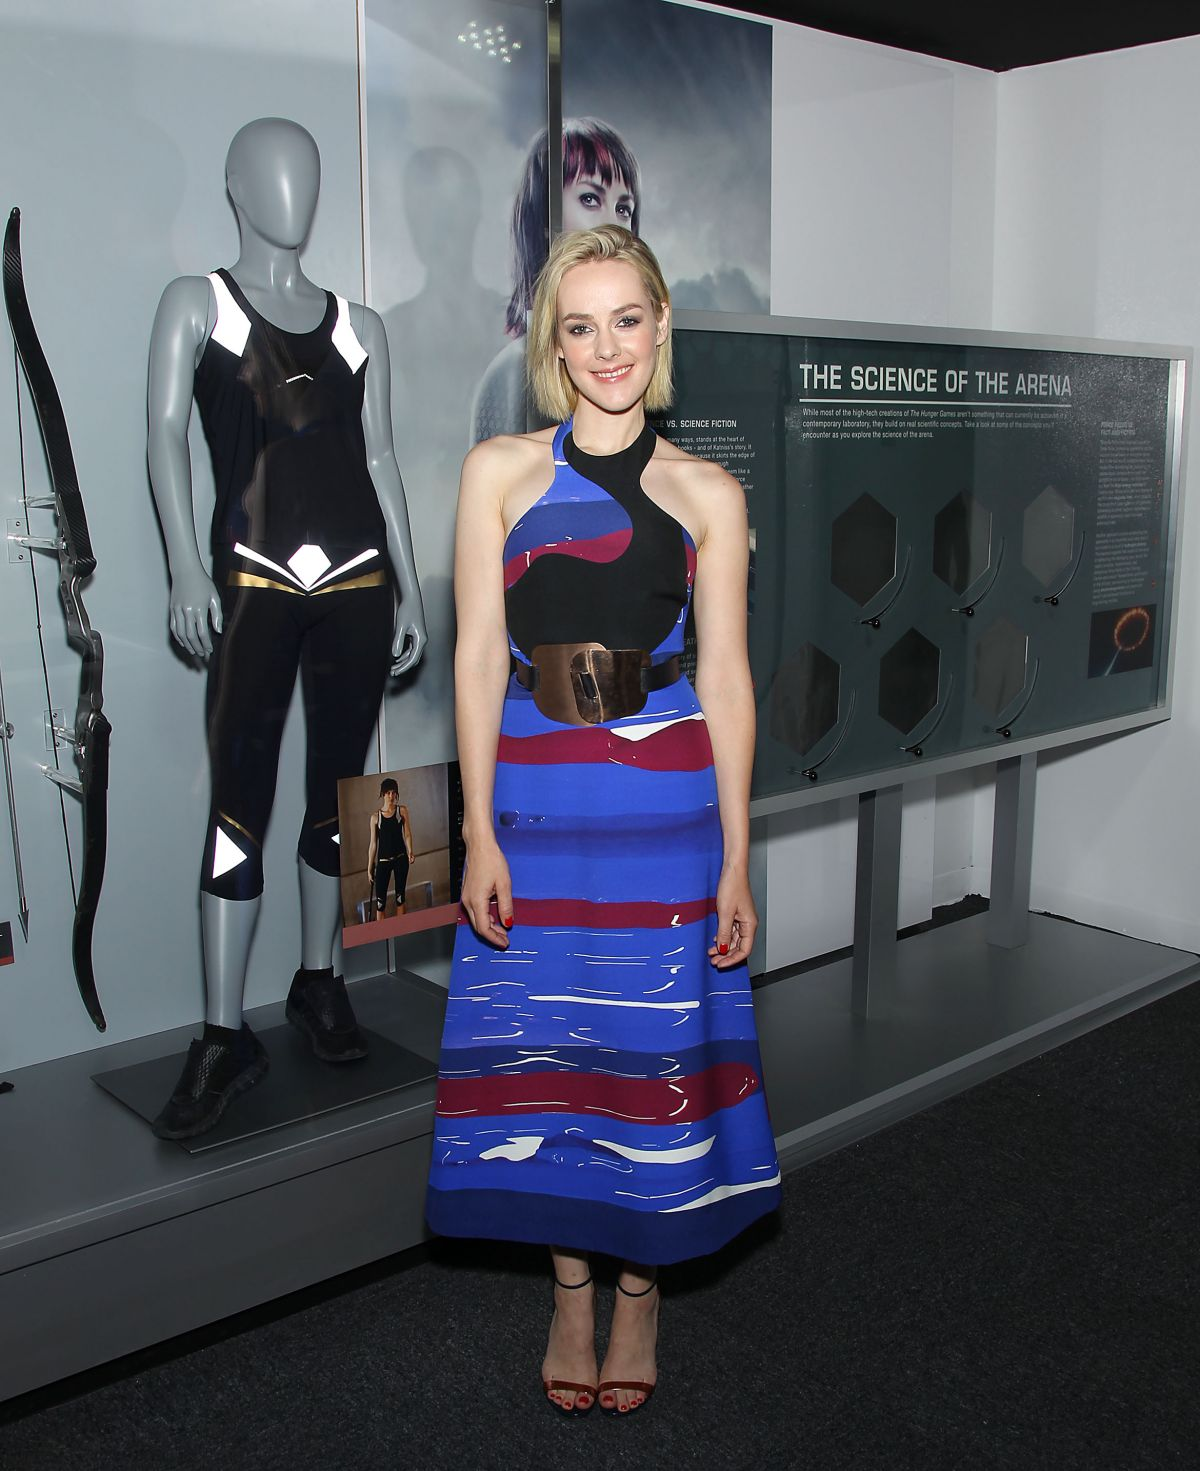 JENA MALONE at The Hunger Games: The Exhibition VIP Event in New York